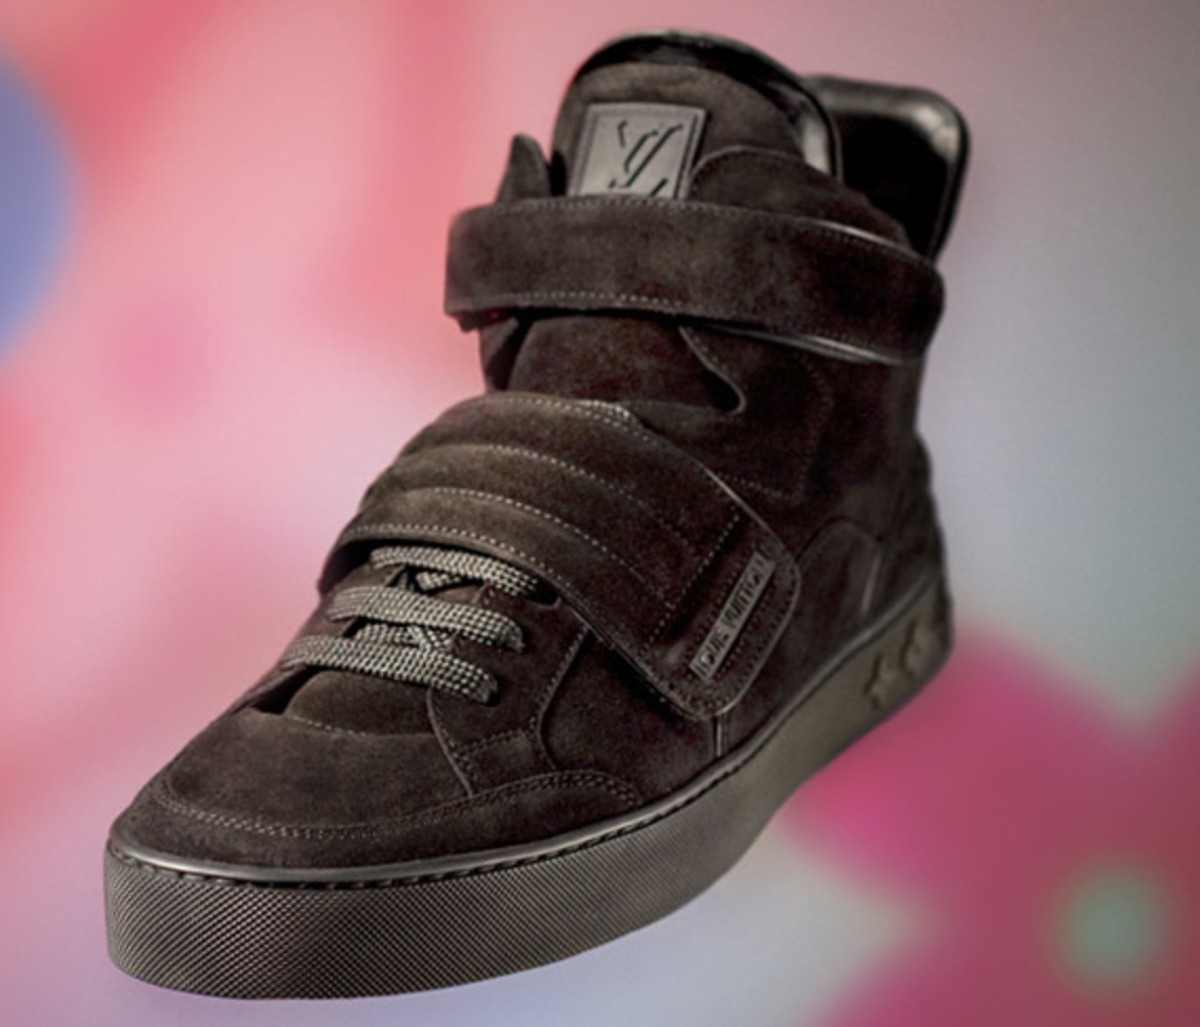 louis-vuitton-x-kanye-west-sneakers-preview-3